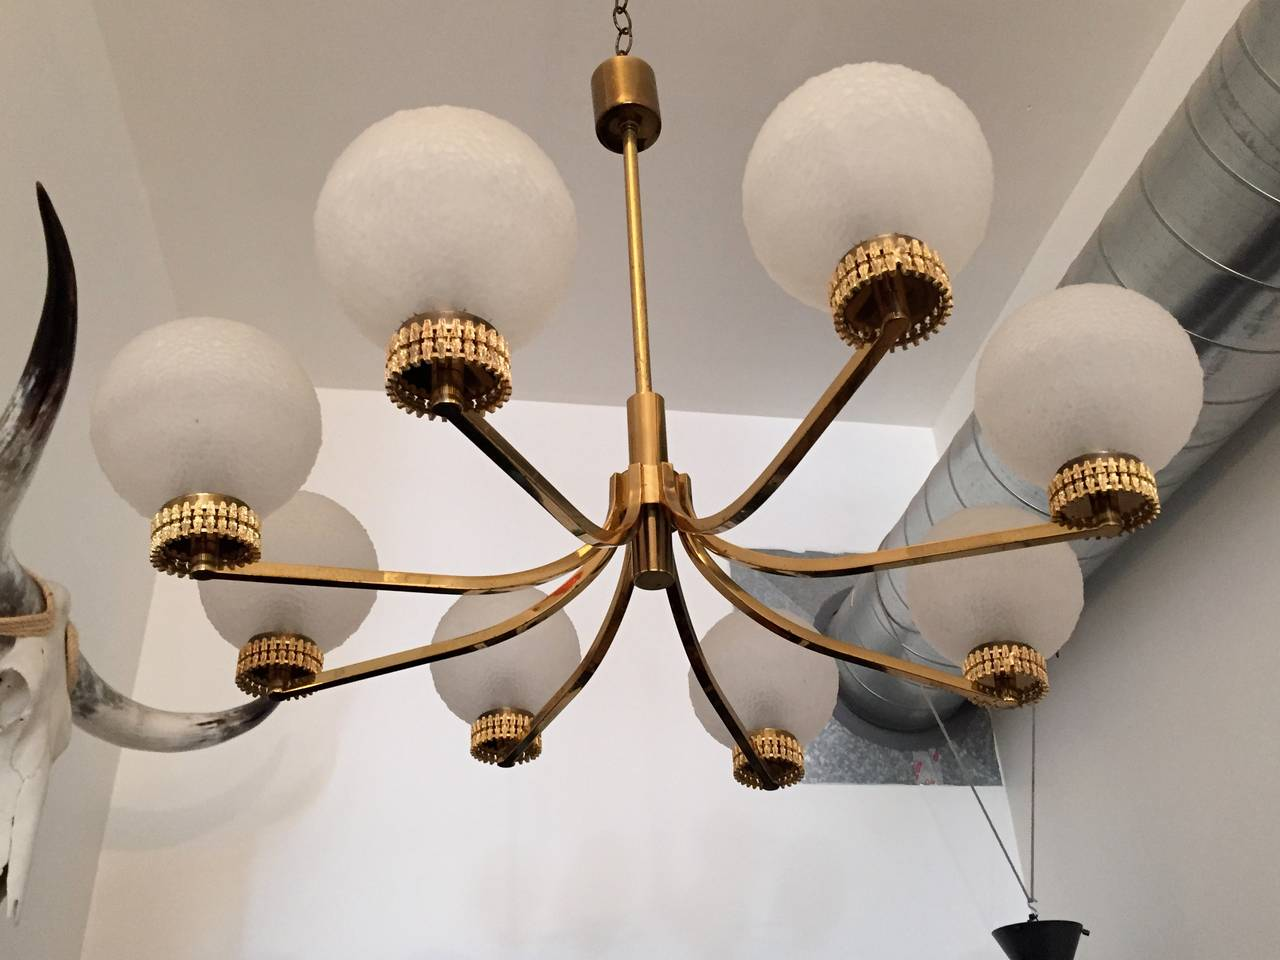 A glamorous 1970s German polished brass and gold-plated chandelier fixture with French textured deco glass globes. Rewired.